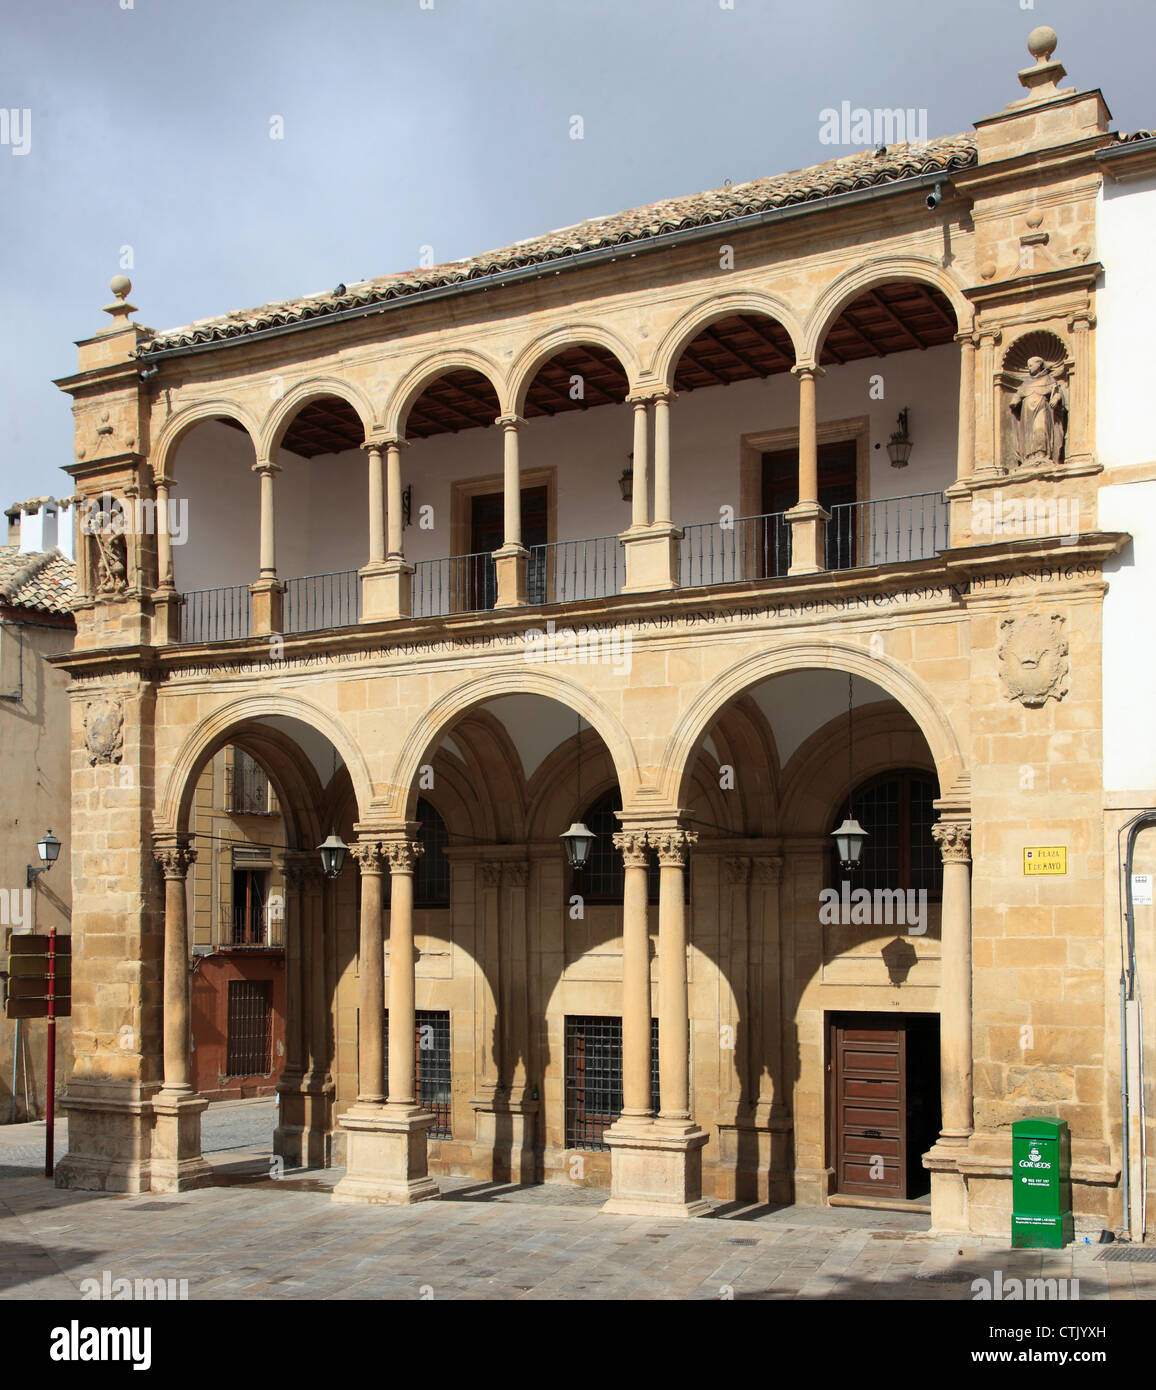 Spain, Andalusia, Ubeda, Antiguo Ayuntamiento, old town hall, - Stock Image